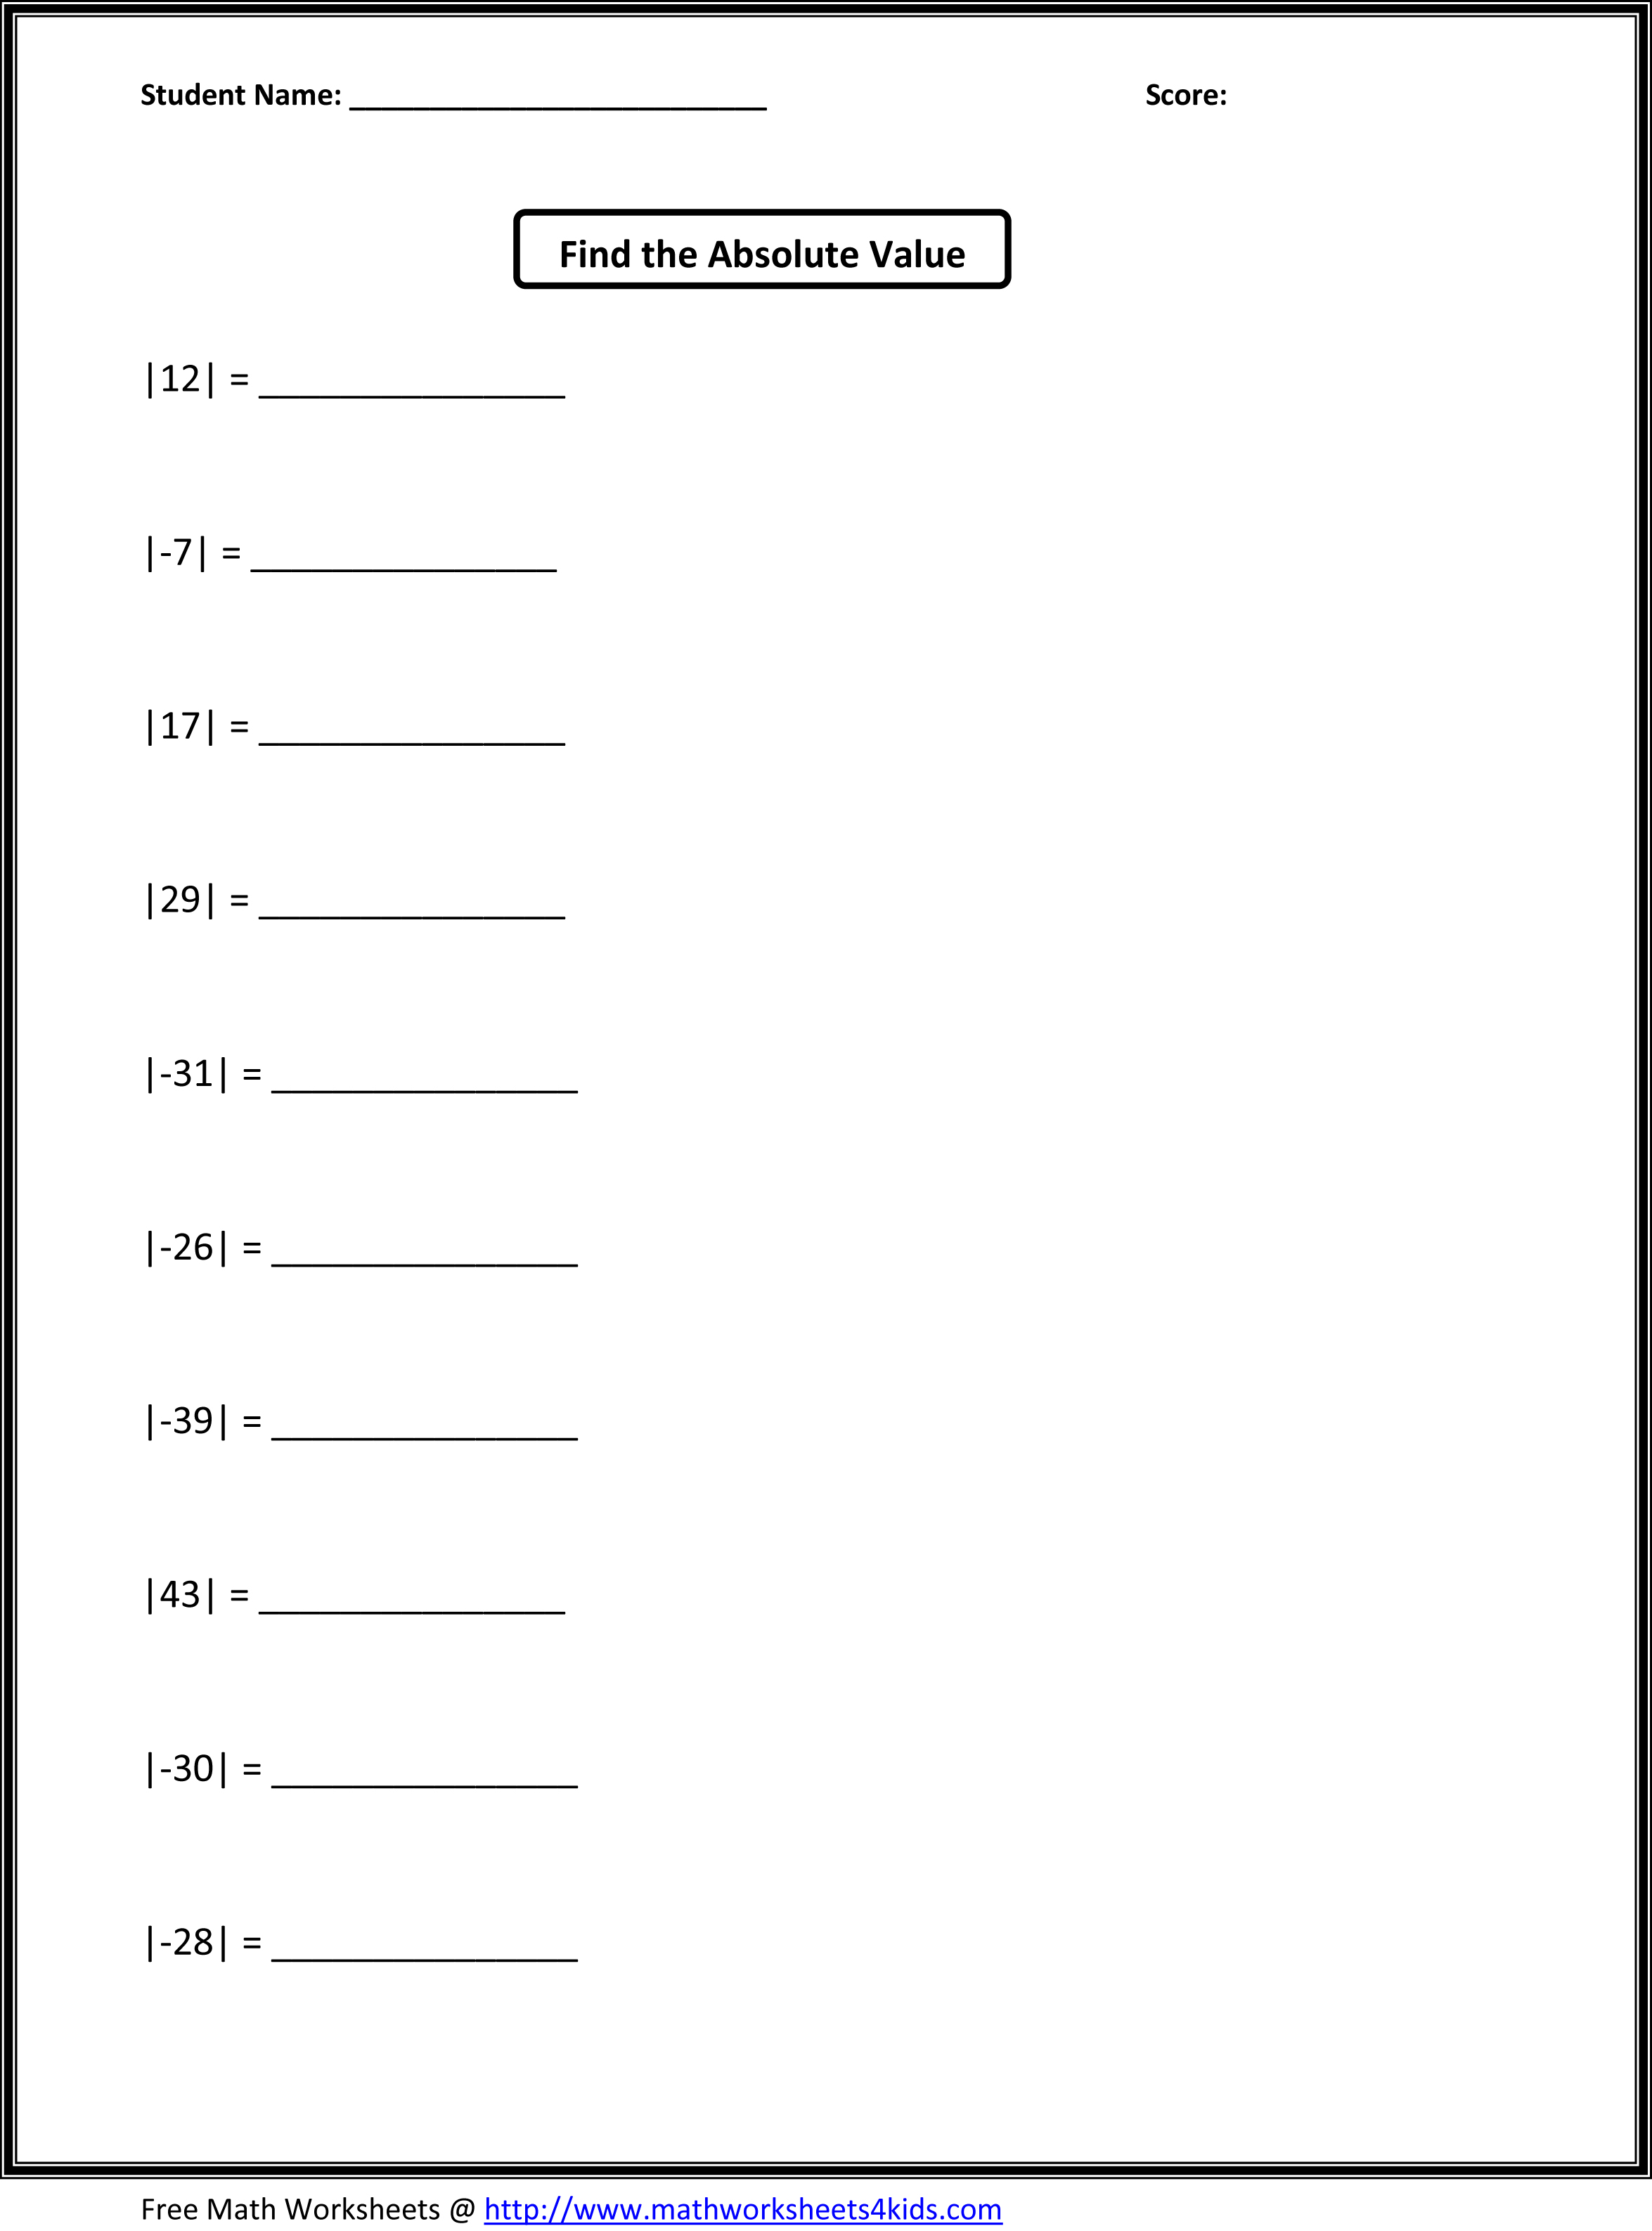 Absolute Value Math Worksheet